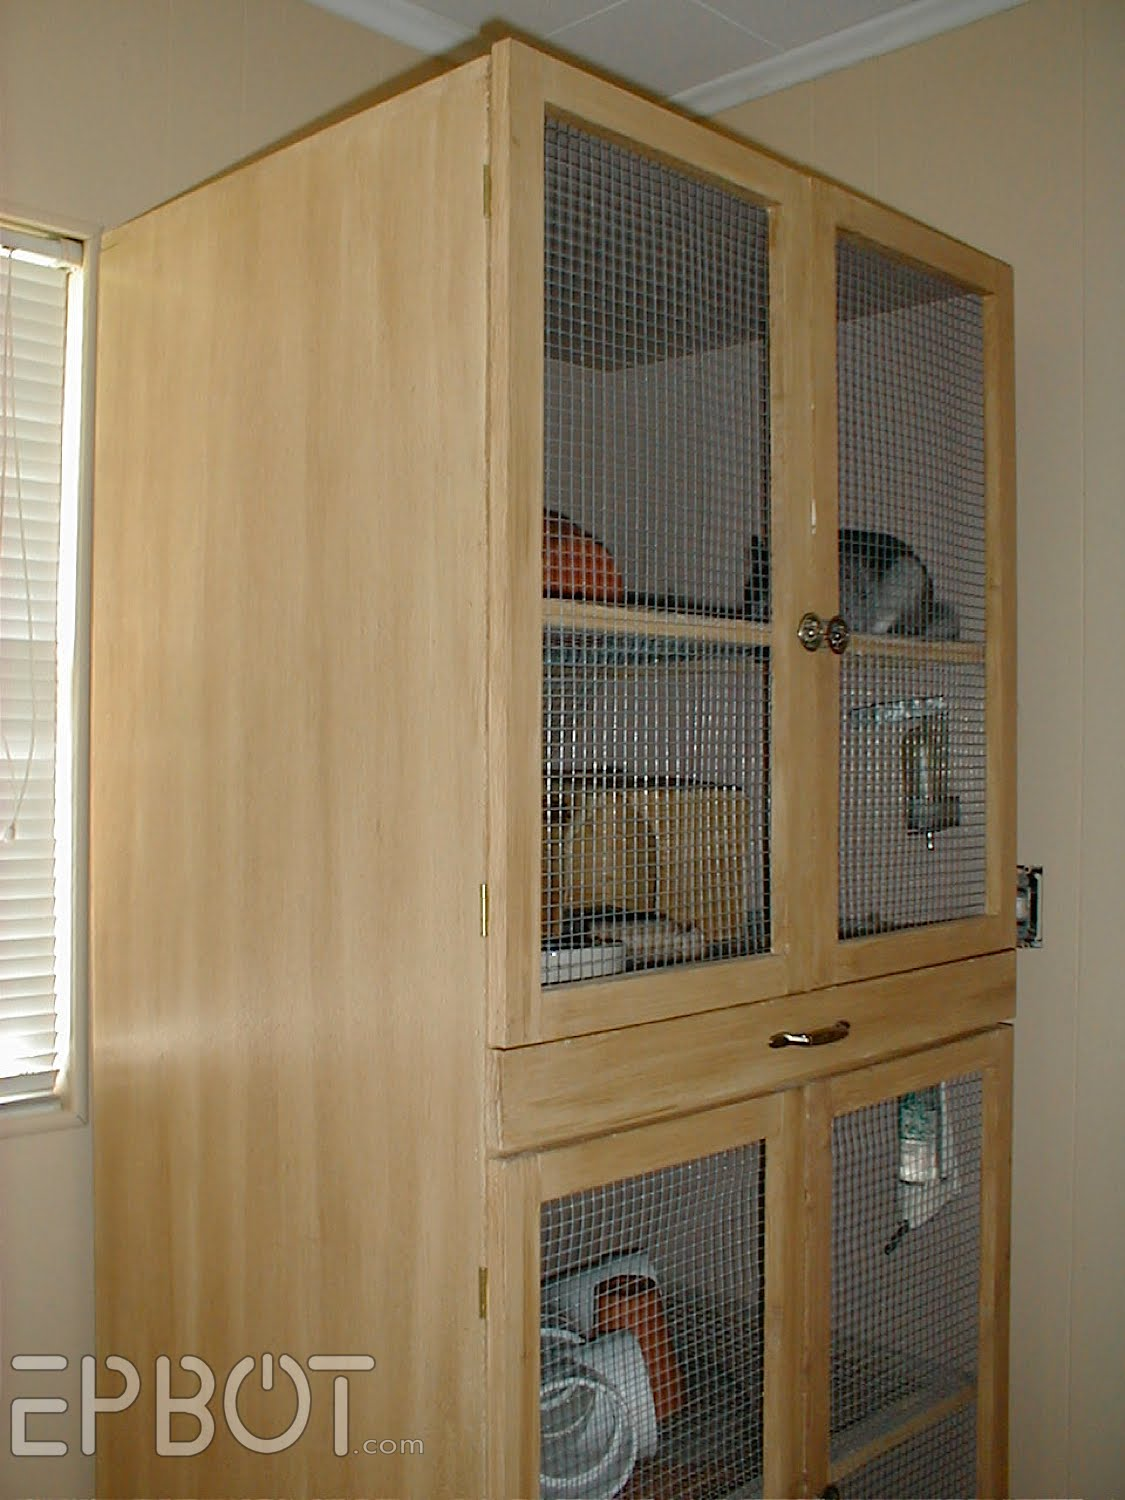 Homemade Chinchilla Cage Plans | Design Home View on homedec